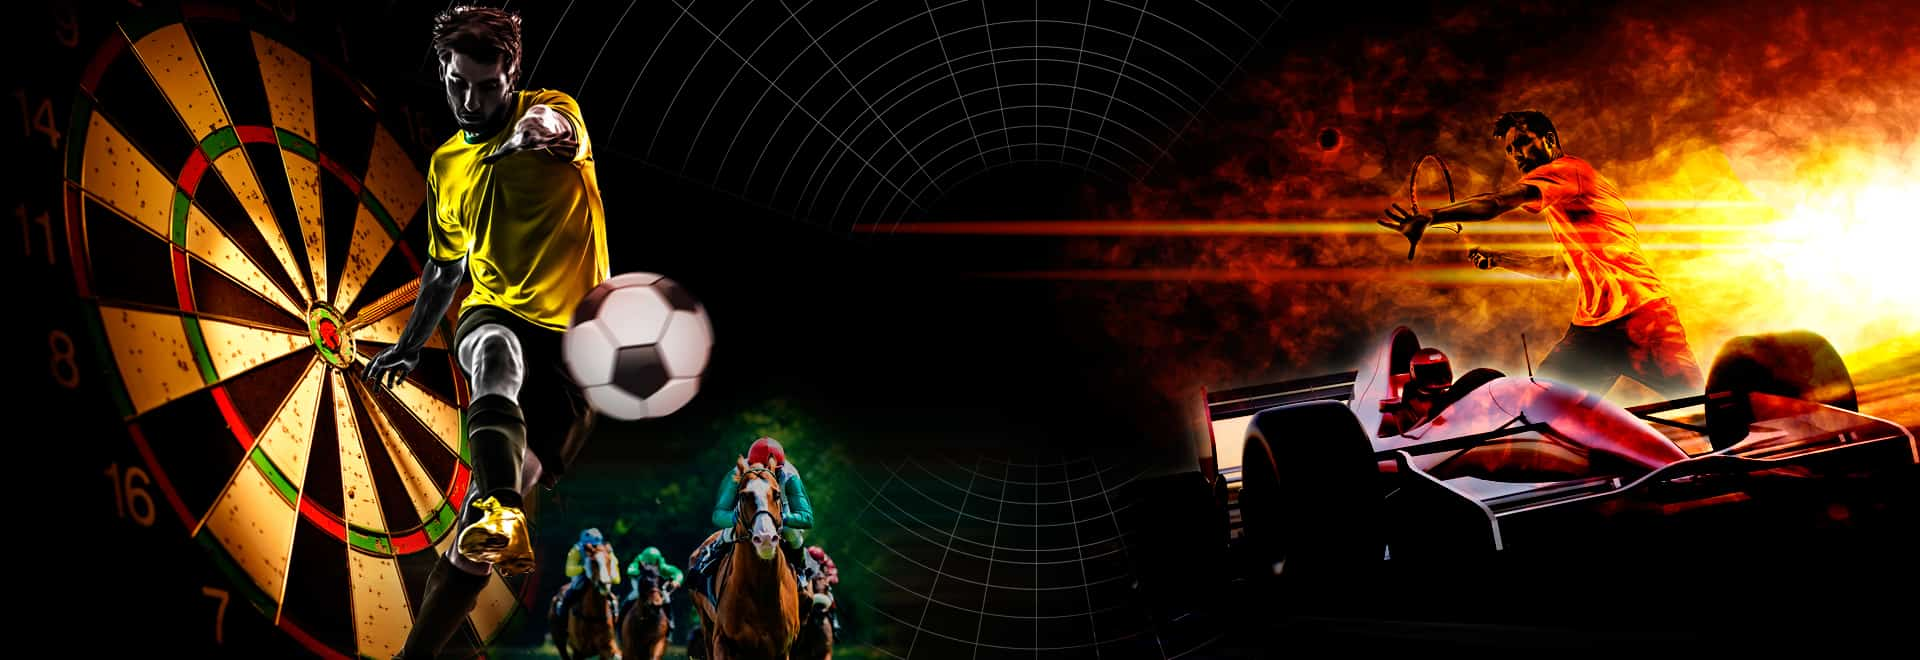 win-on-sports-home-banner-min